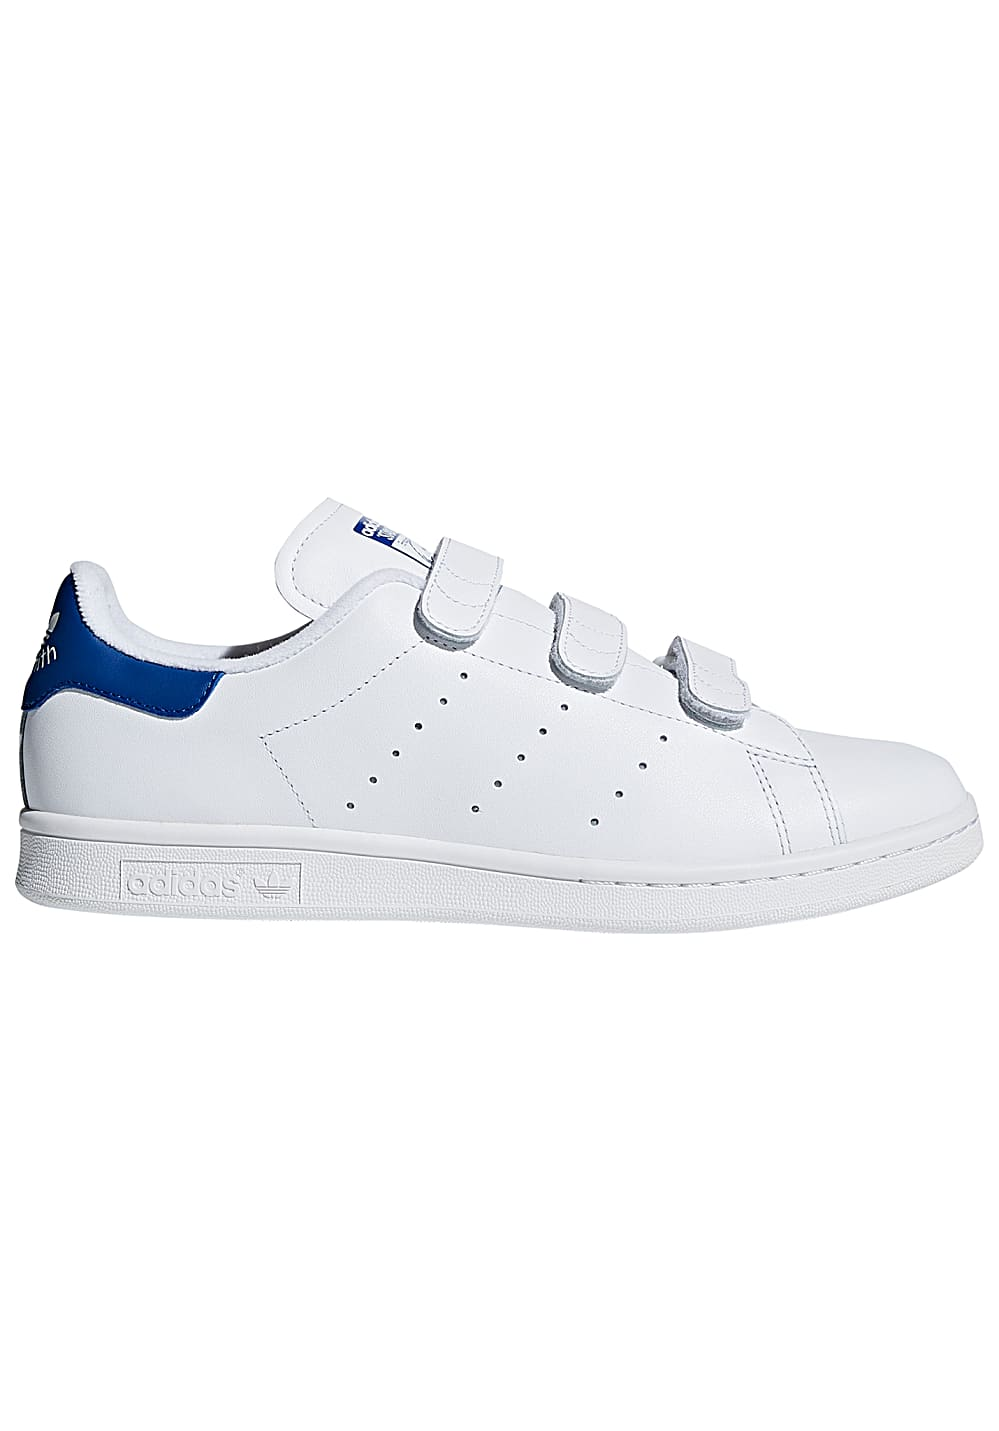 ADIDAS ORIGINALS Stan Smith Cf Baskets pour Homme Blanc